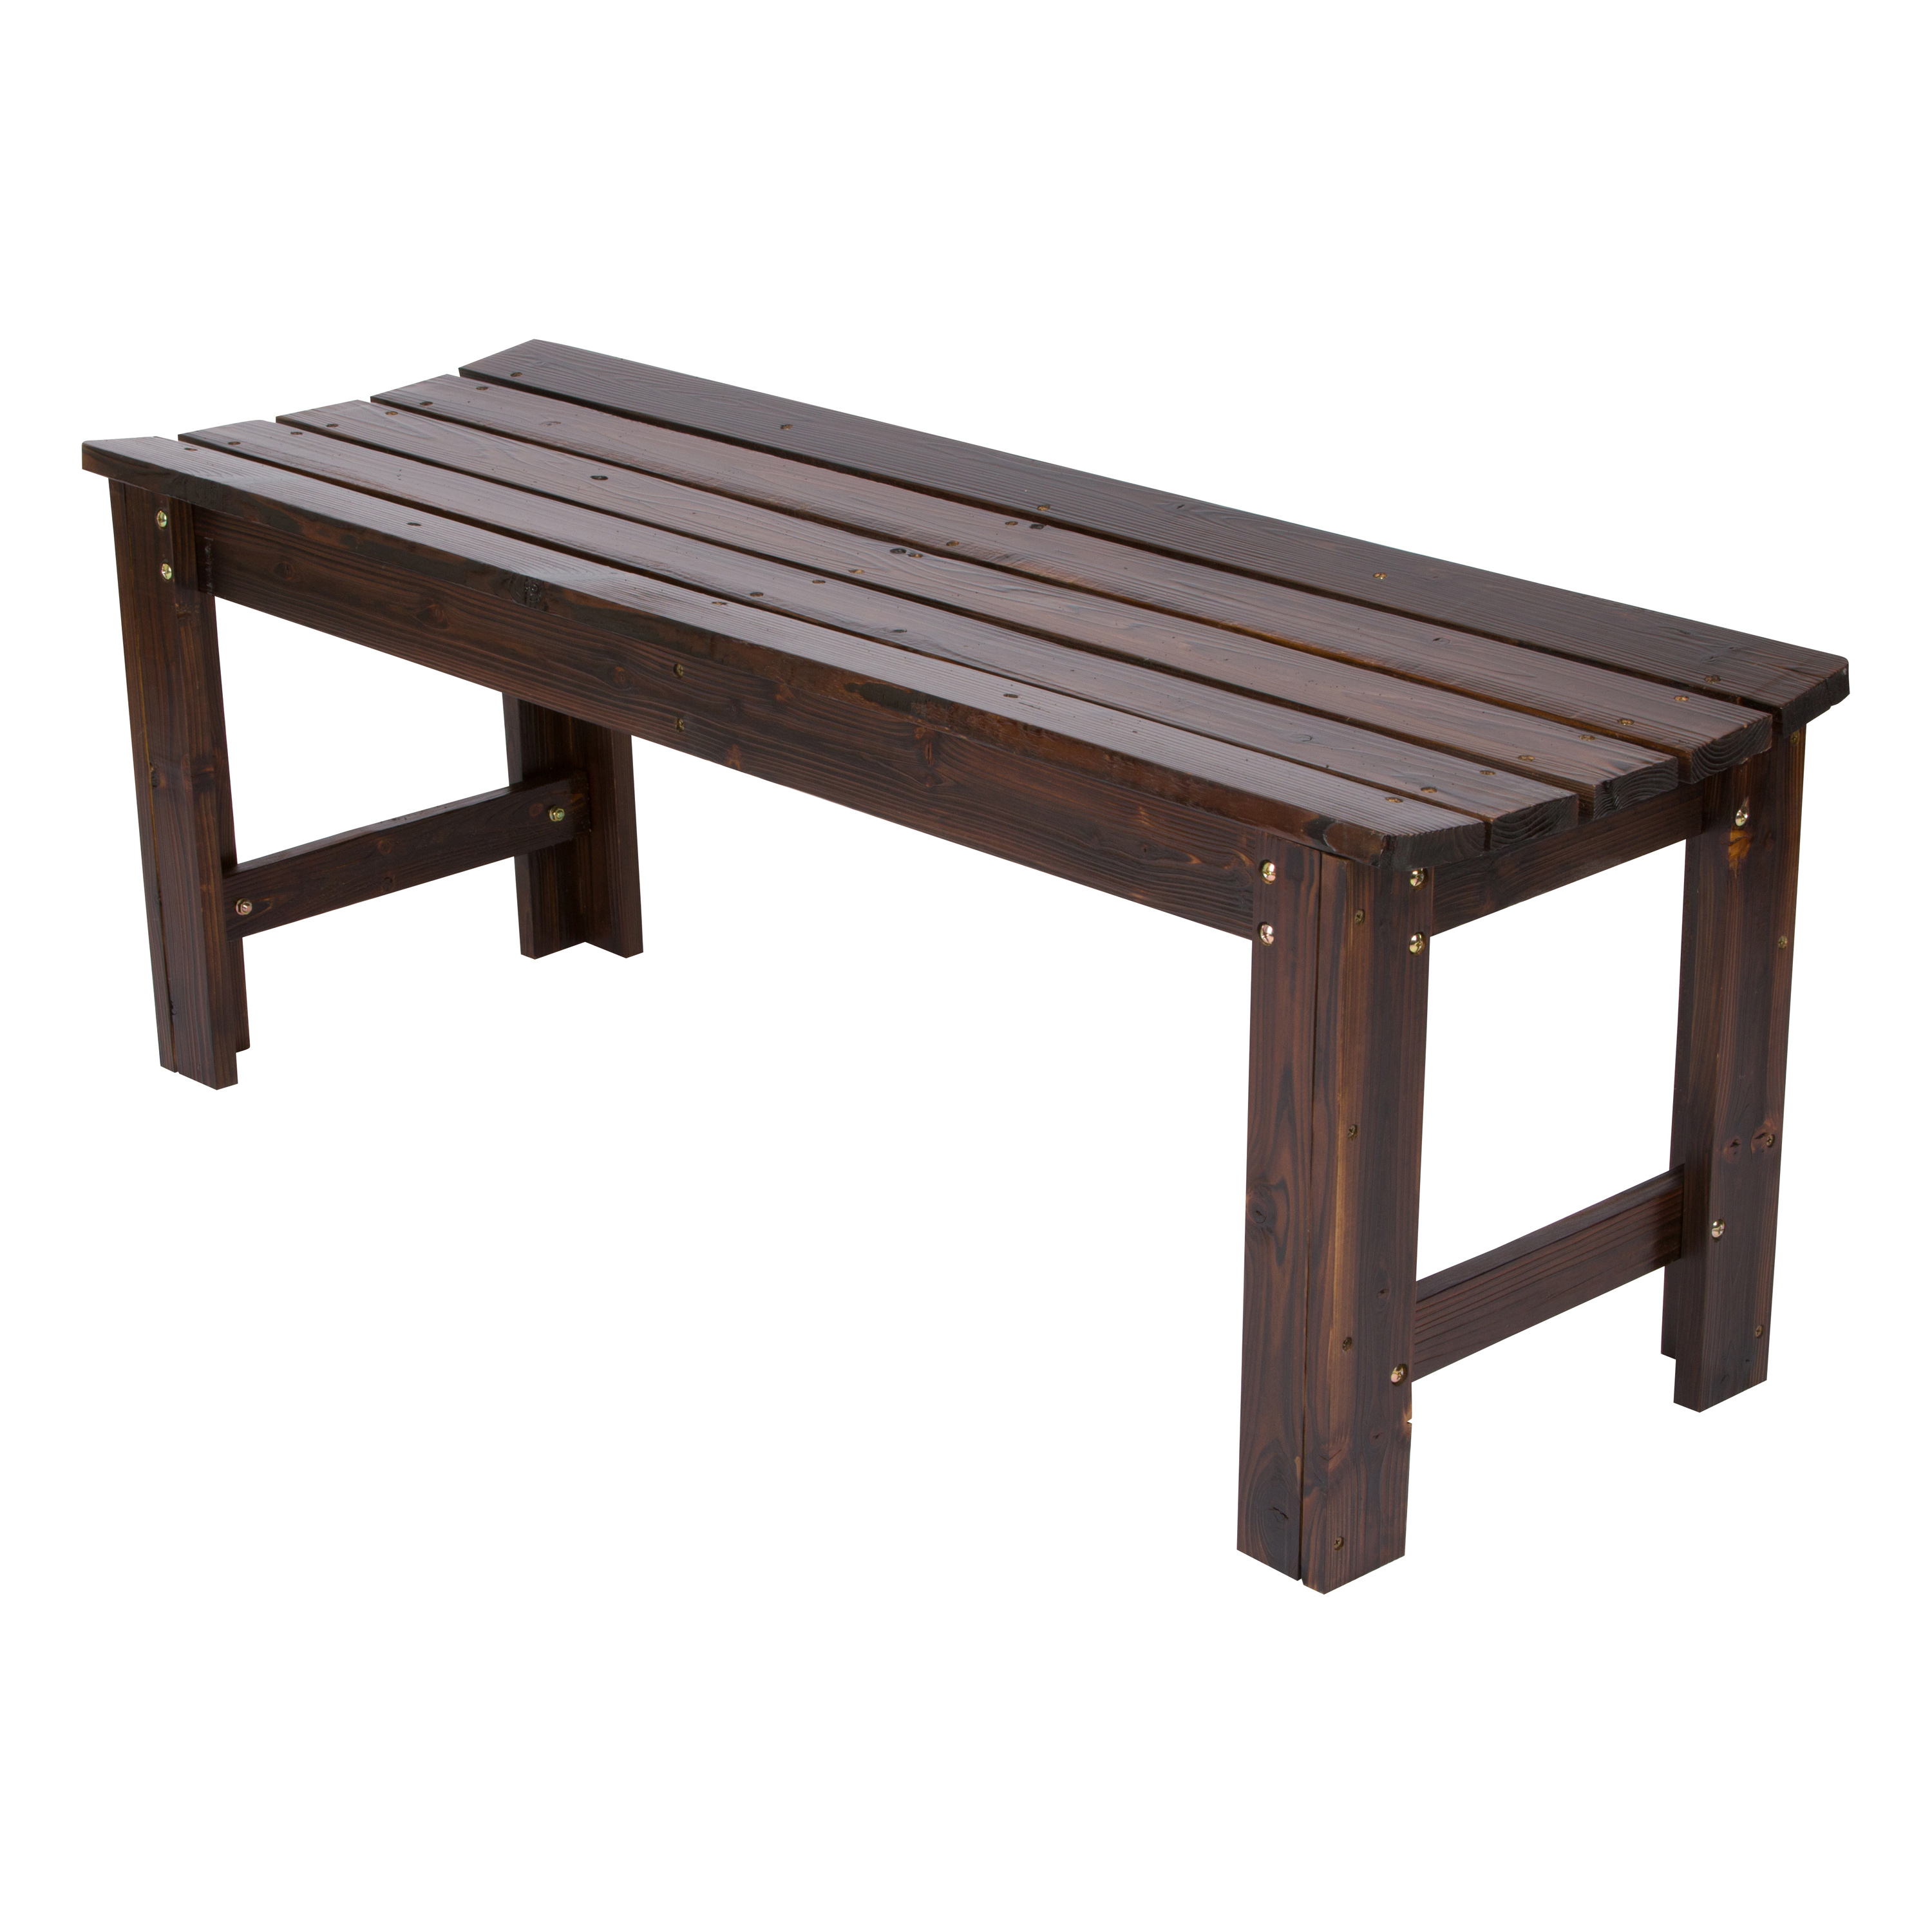 Shine Company 4 Ft. Backless Garden Bench - Burnt Brown